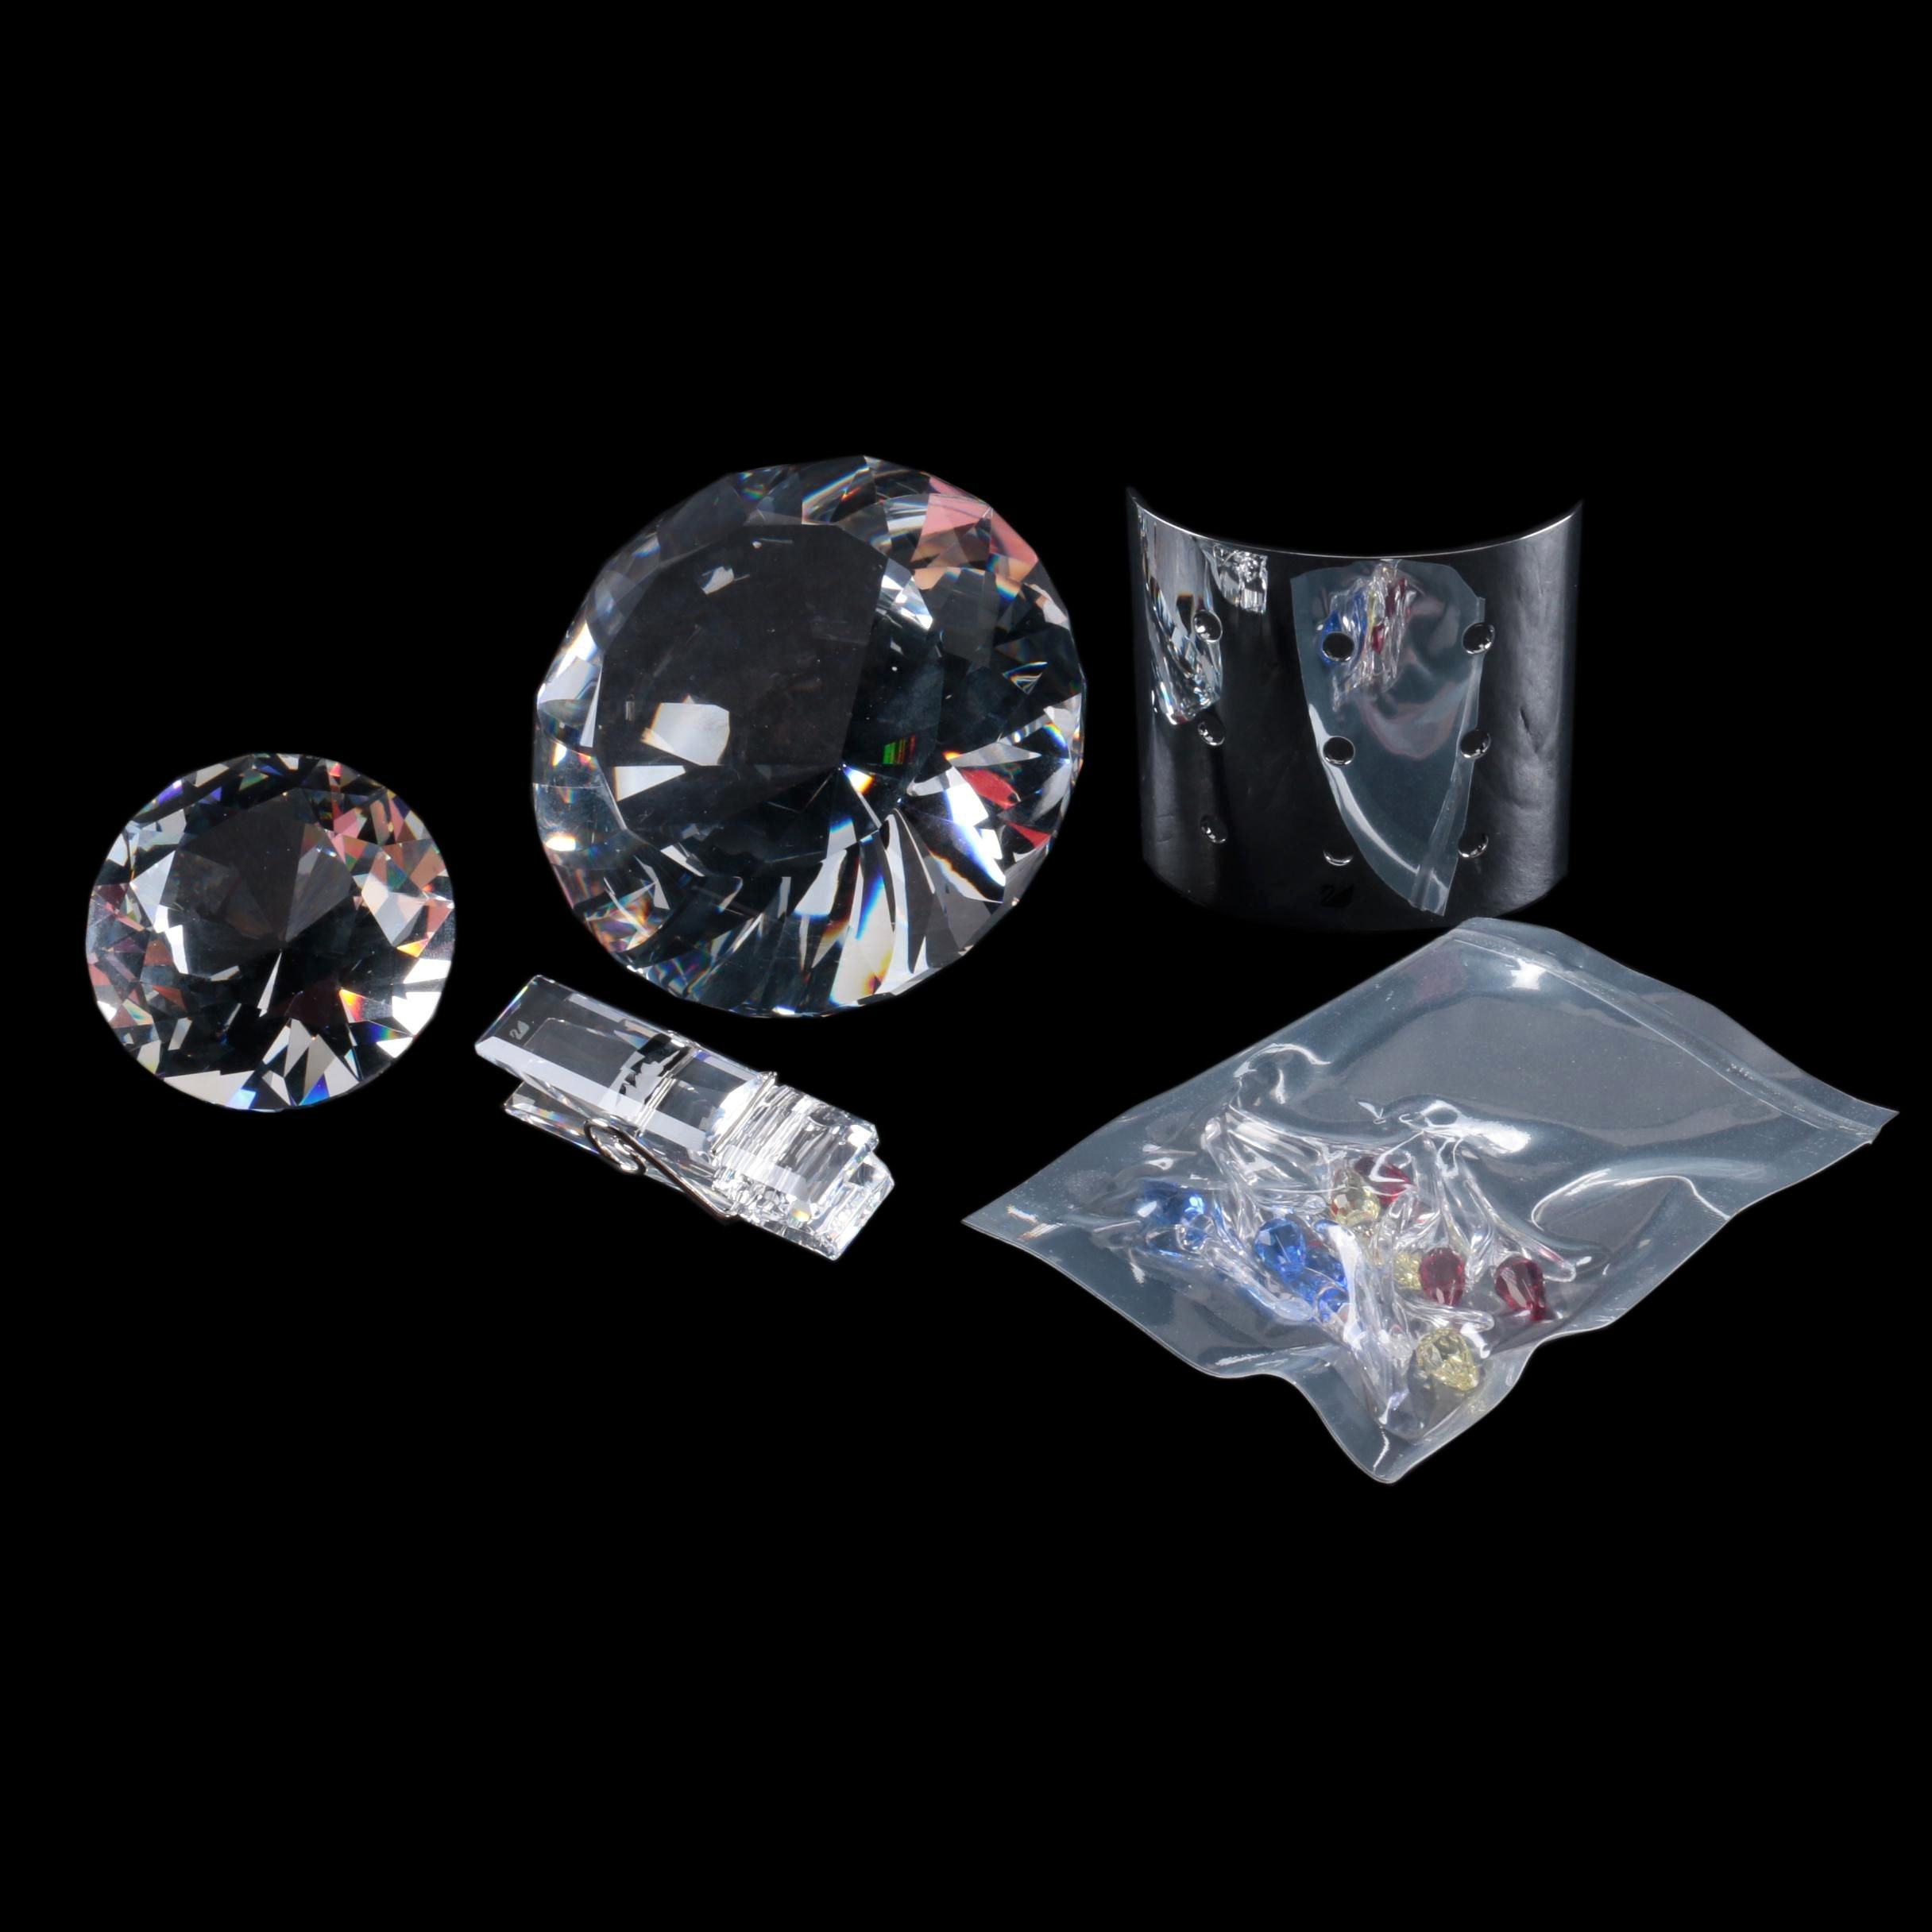 """Swarovski Crystal """"Chaton"""" Diamond Paperweights and Collectibles"""